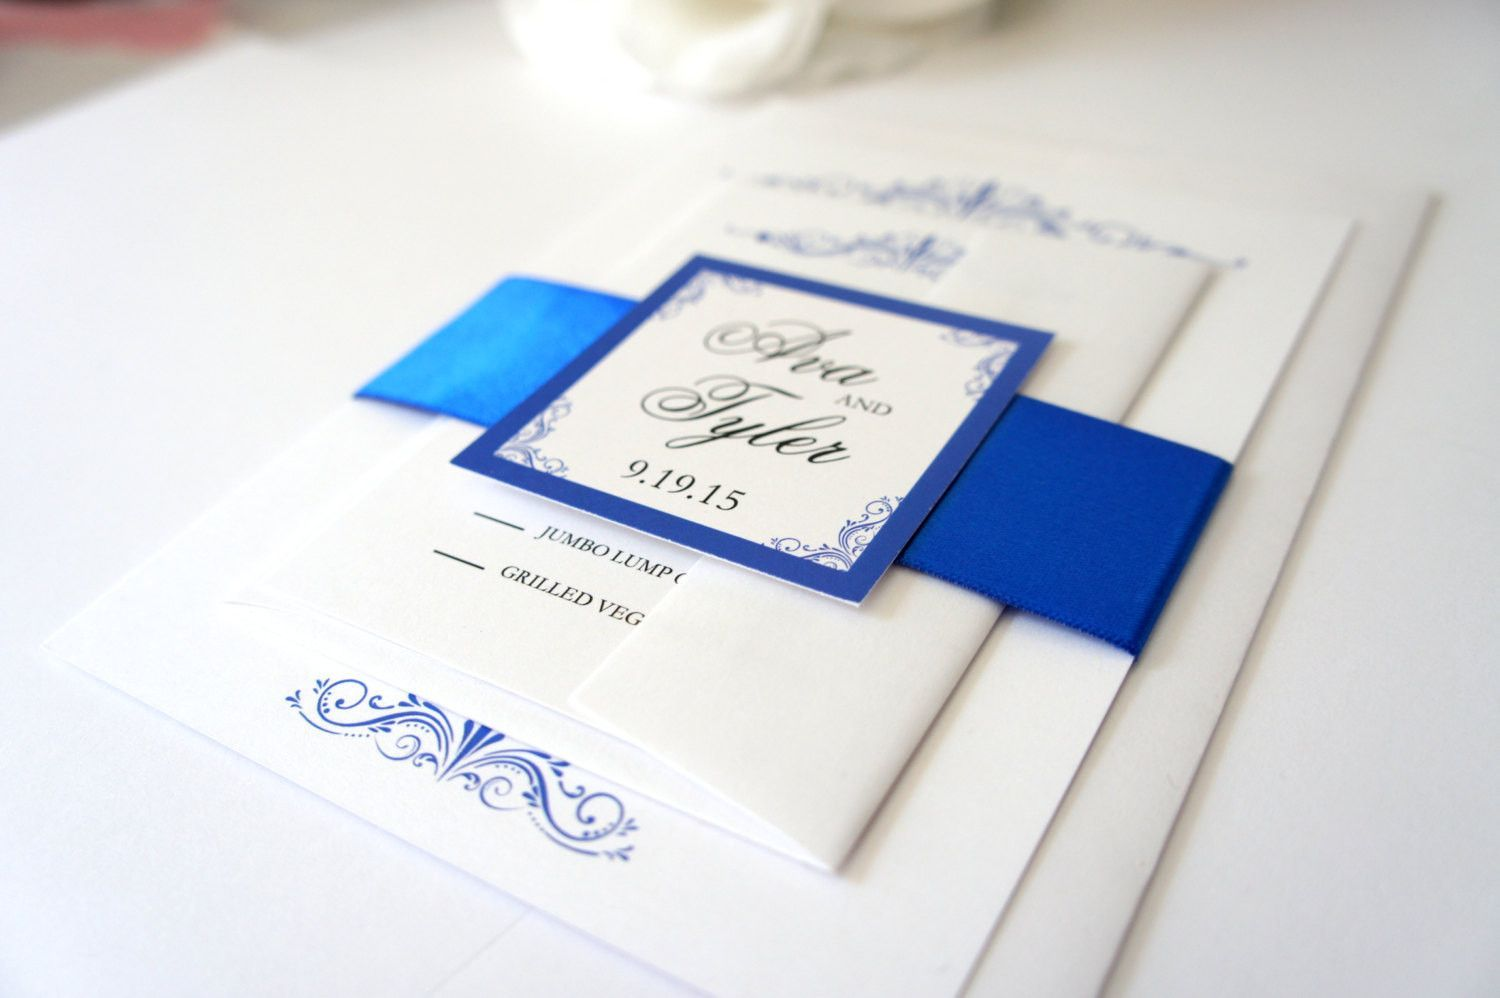 Royal Blue Wedding Invitation Invitations Set Belly Band Sophisticated Classy Formal Deposit: Royal Blue Wedding Invitation Set At Websimilar.org